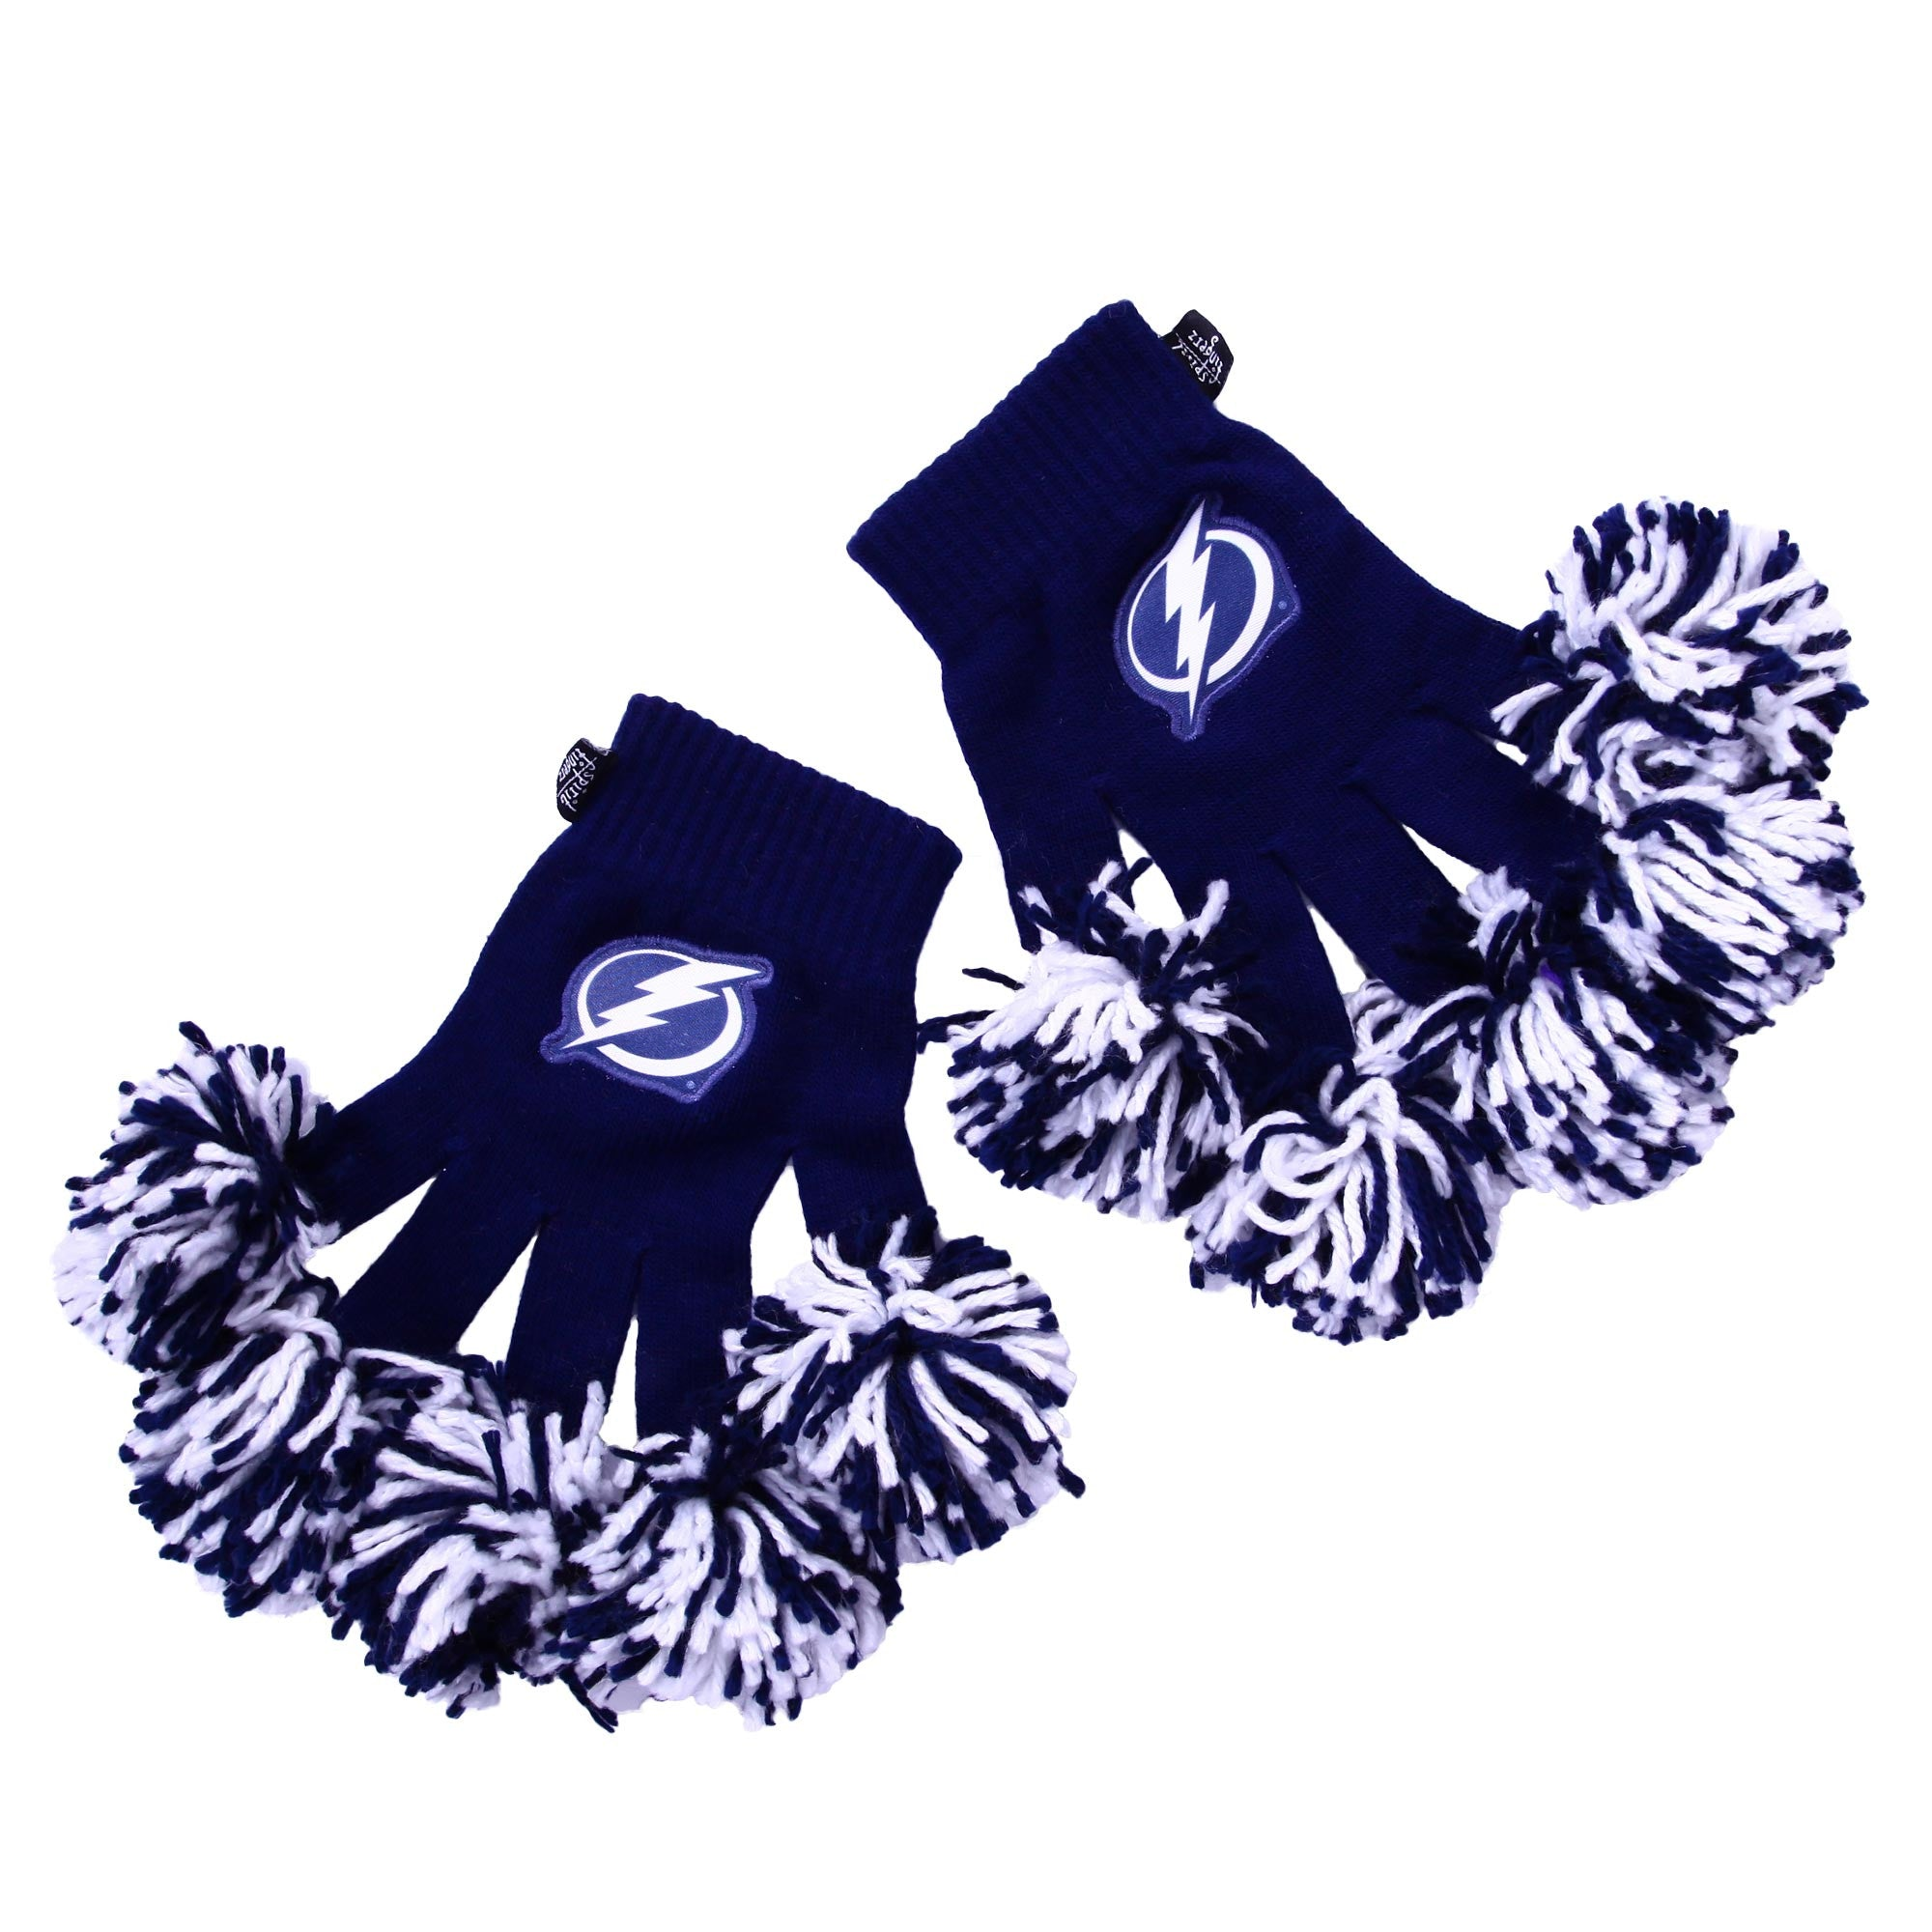 Tampa Bay Lightning NHL Spirit Fingerz Cheerleading Pom-Pom Gloves